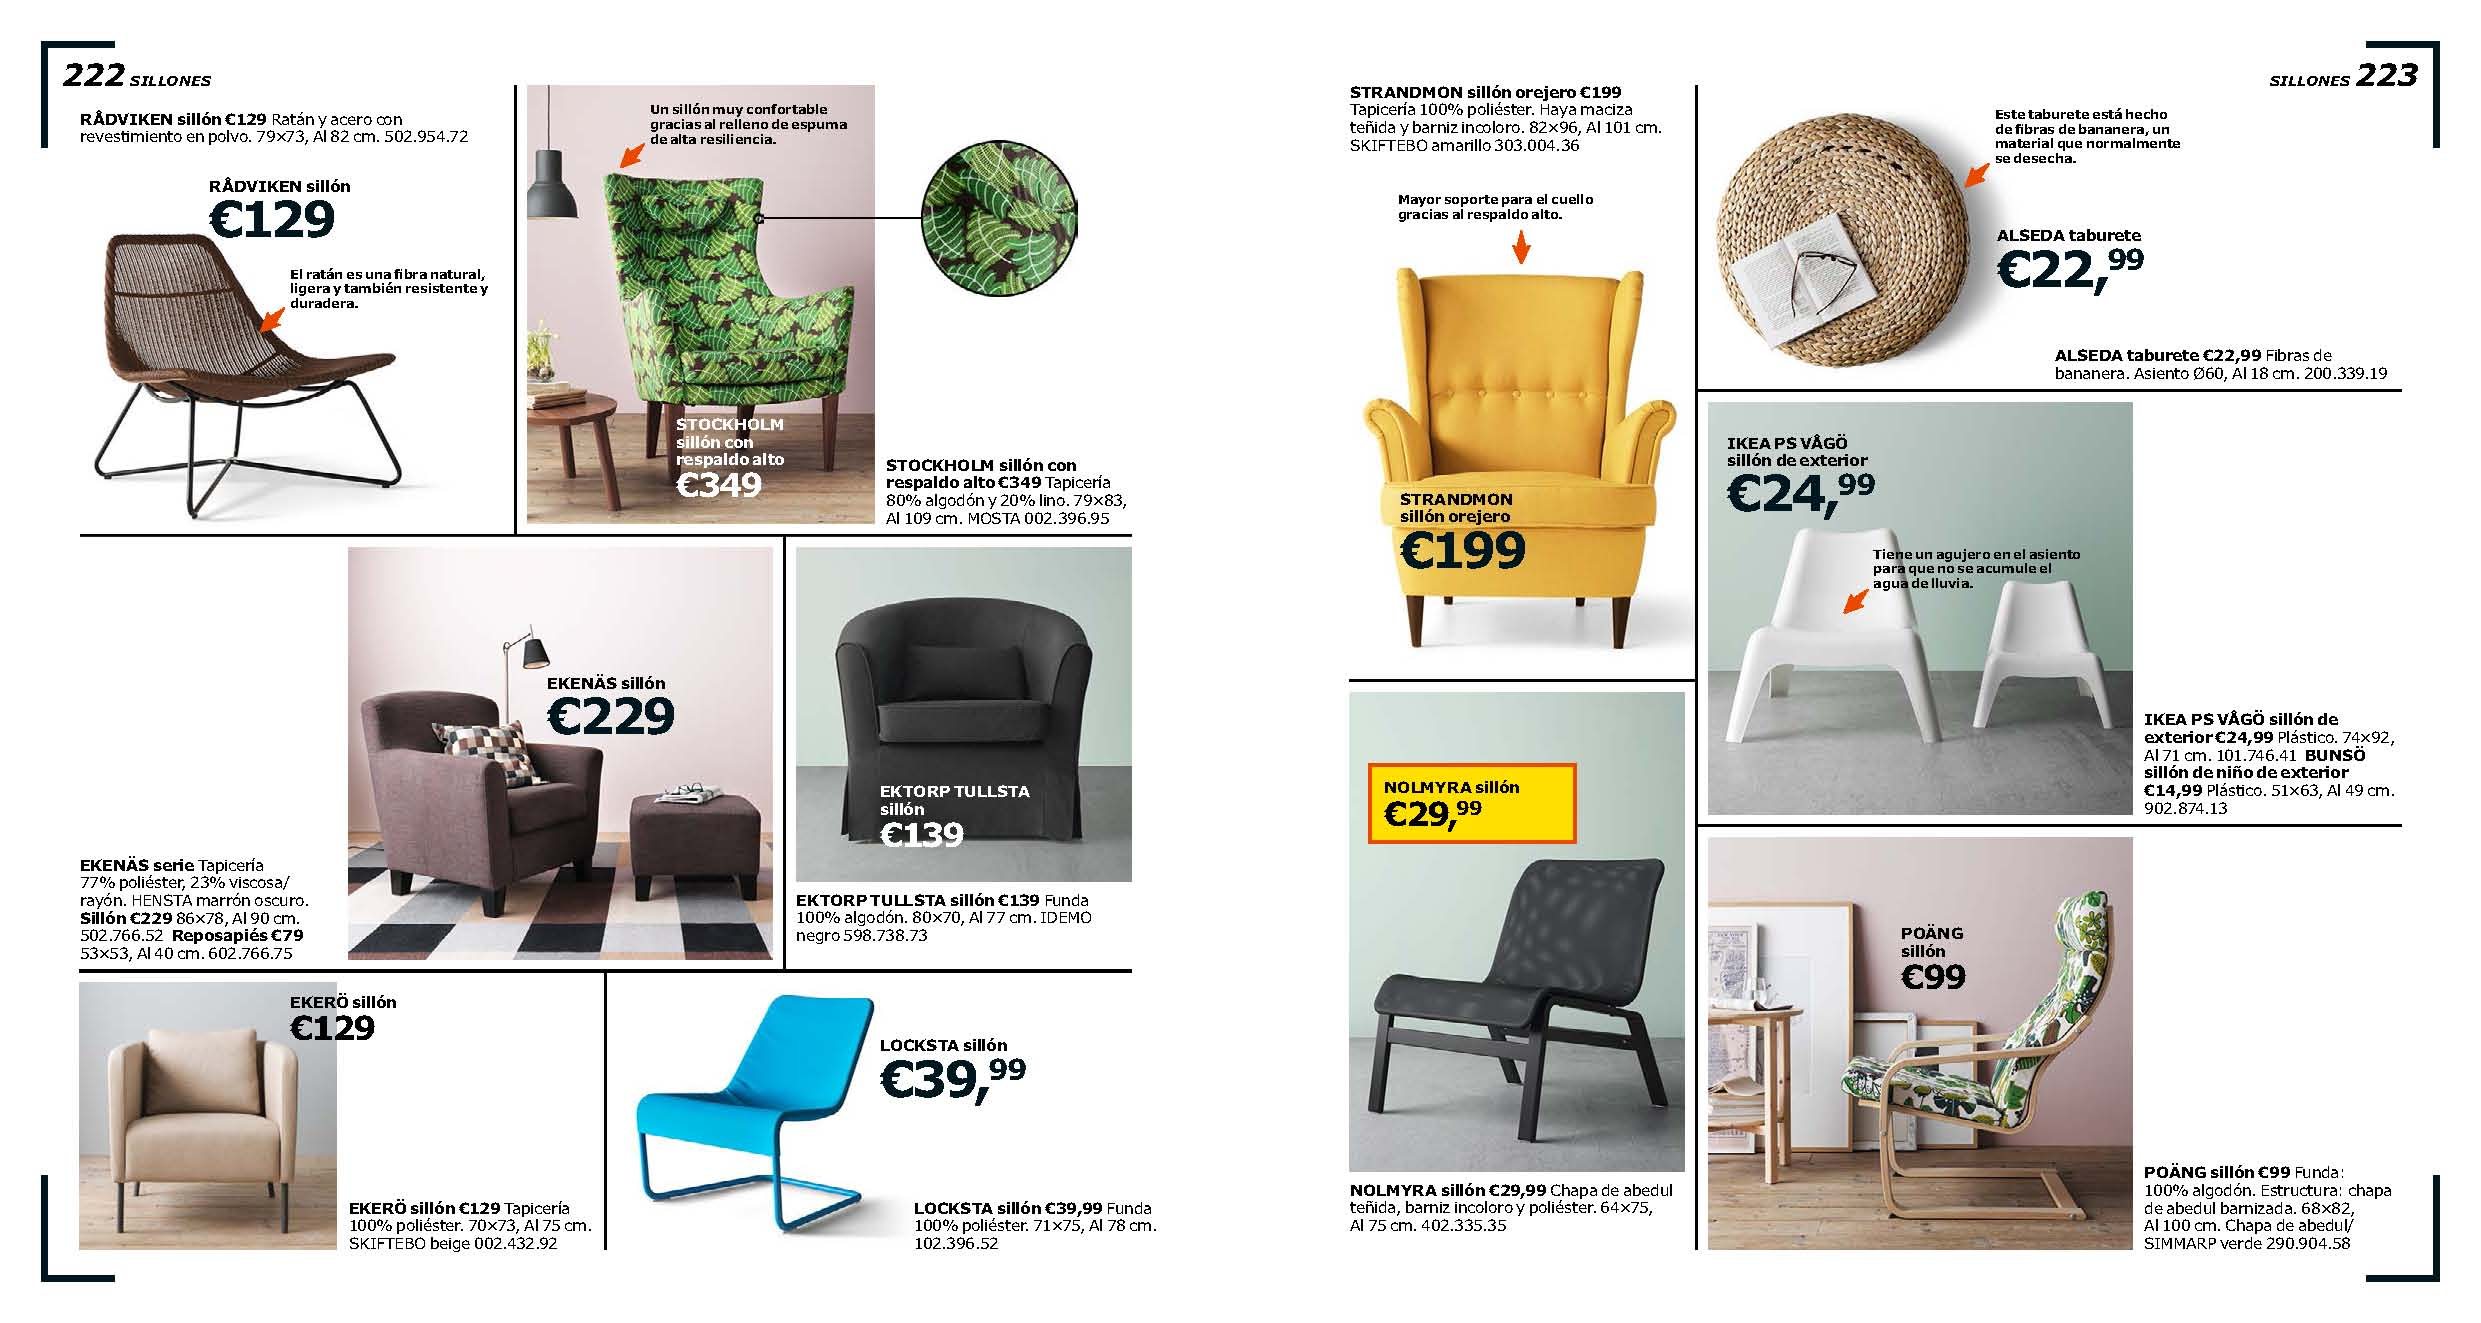 catalog decorate with ikea 2016 es_Page_112